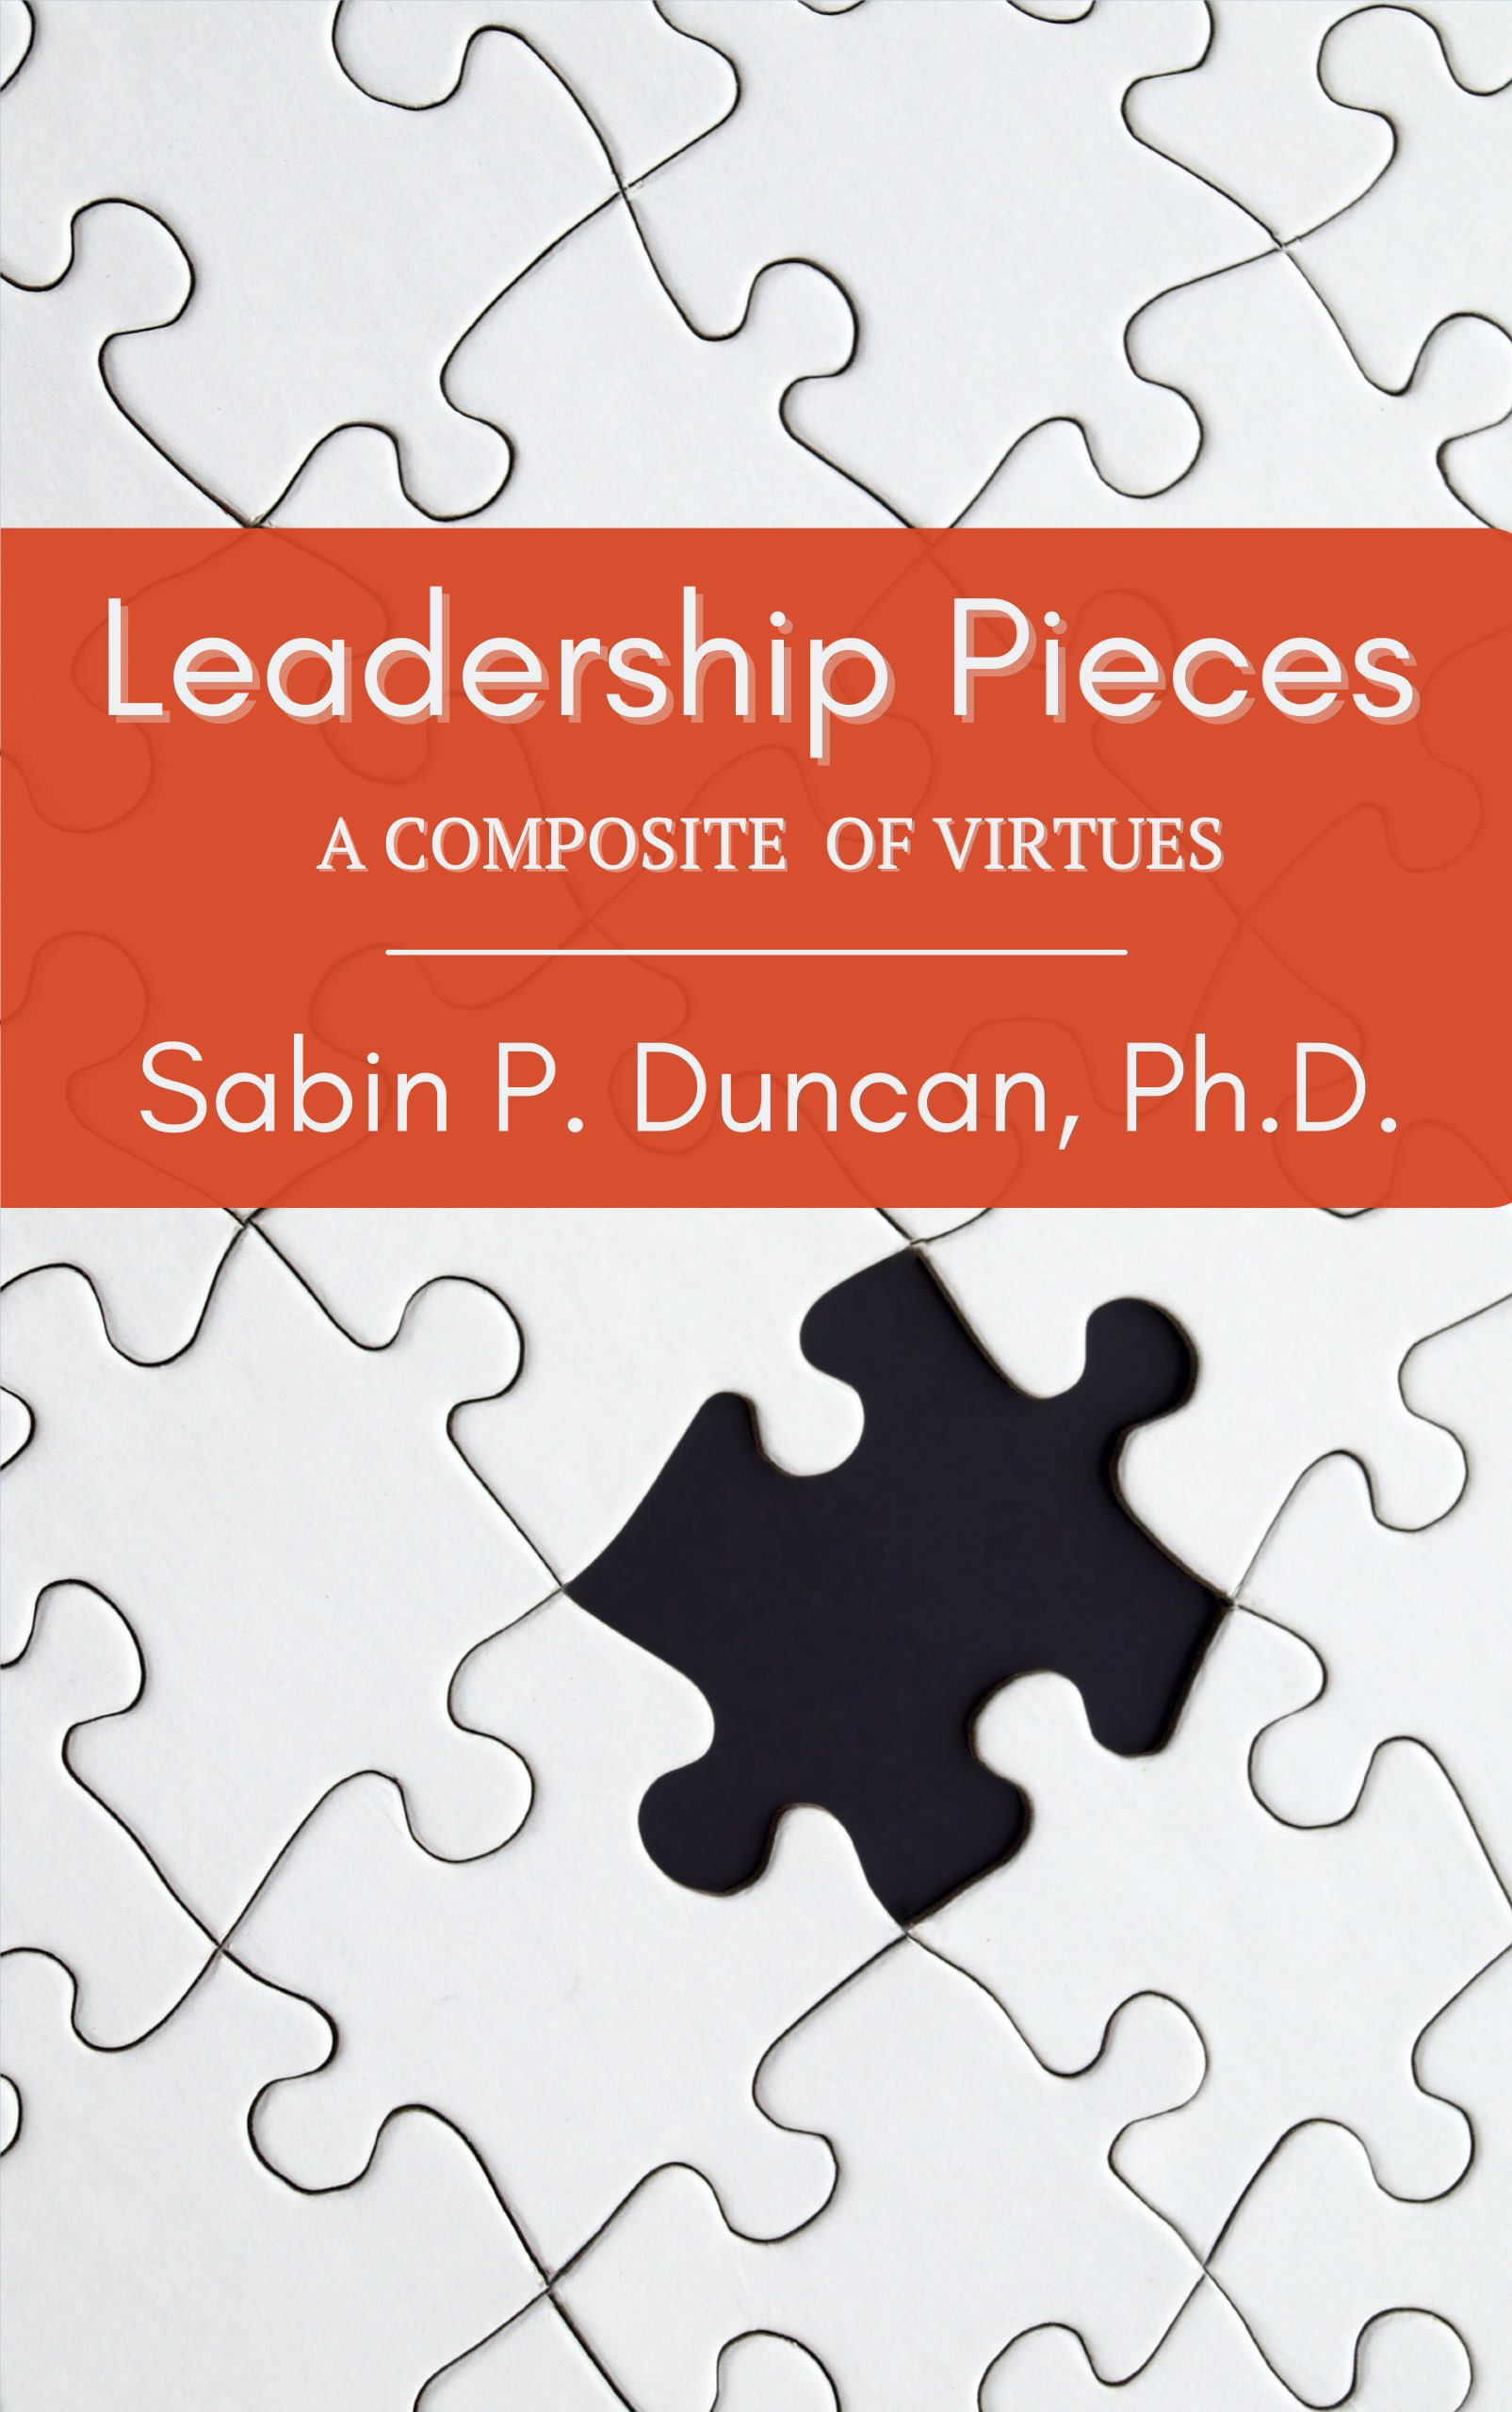 Leadership Pieces: A Composite of Virtues